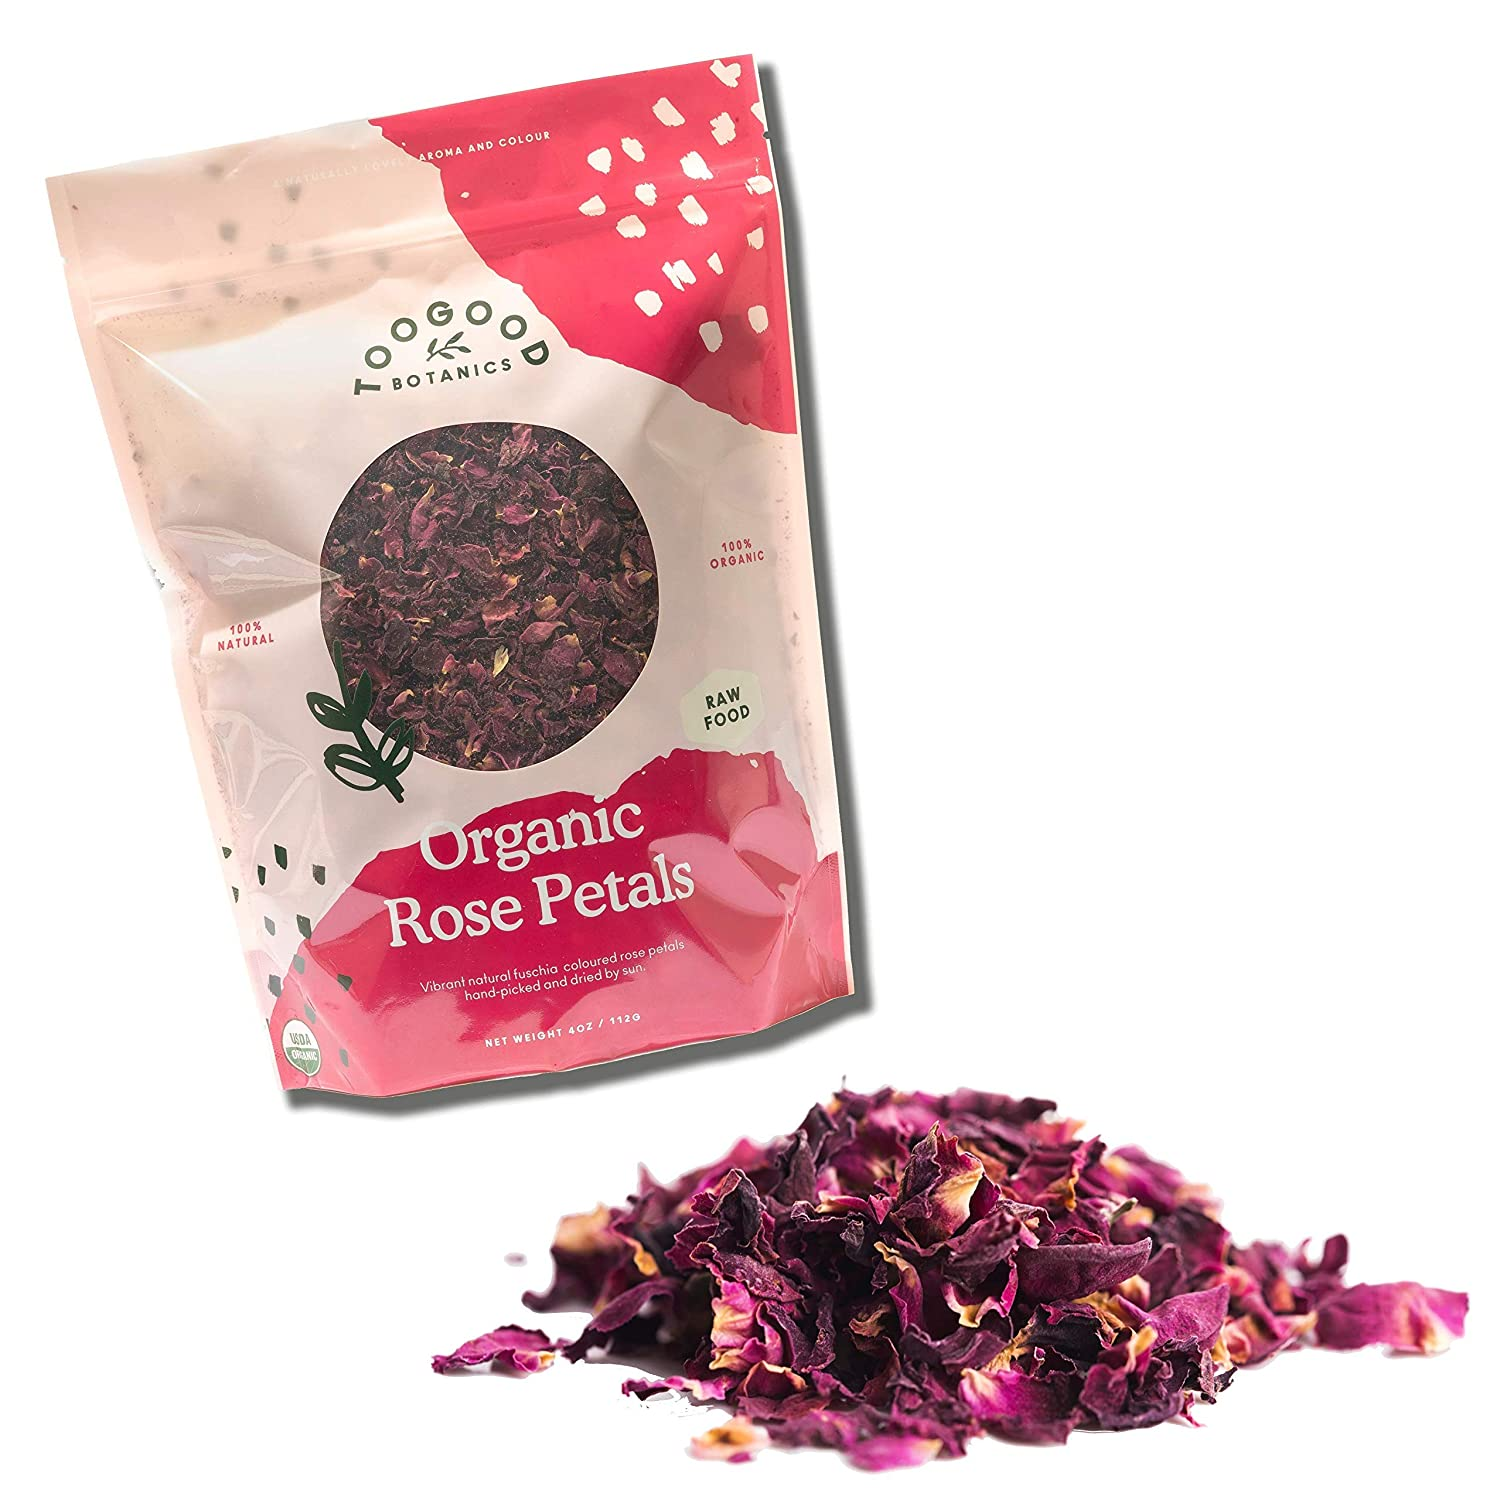 Organic Dried Rose Petals, non-GMO, Culinary-grade [Certified Organic by Pro-Cert] (4 ounce)